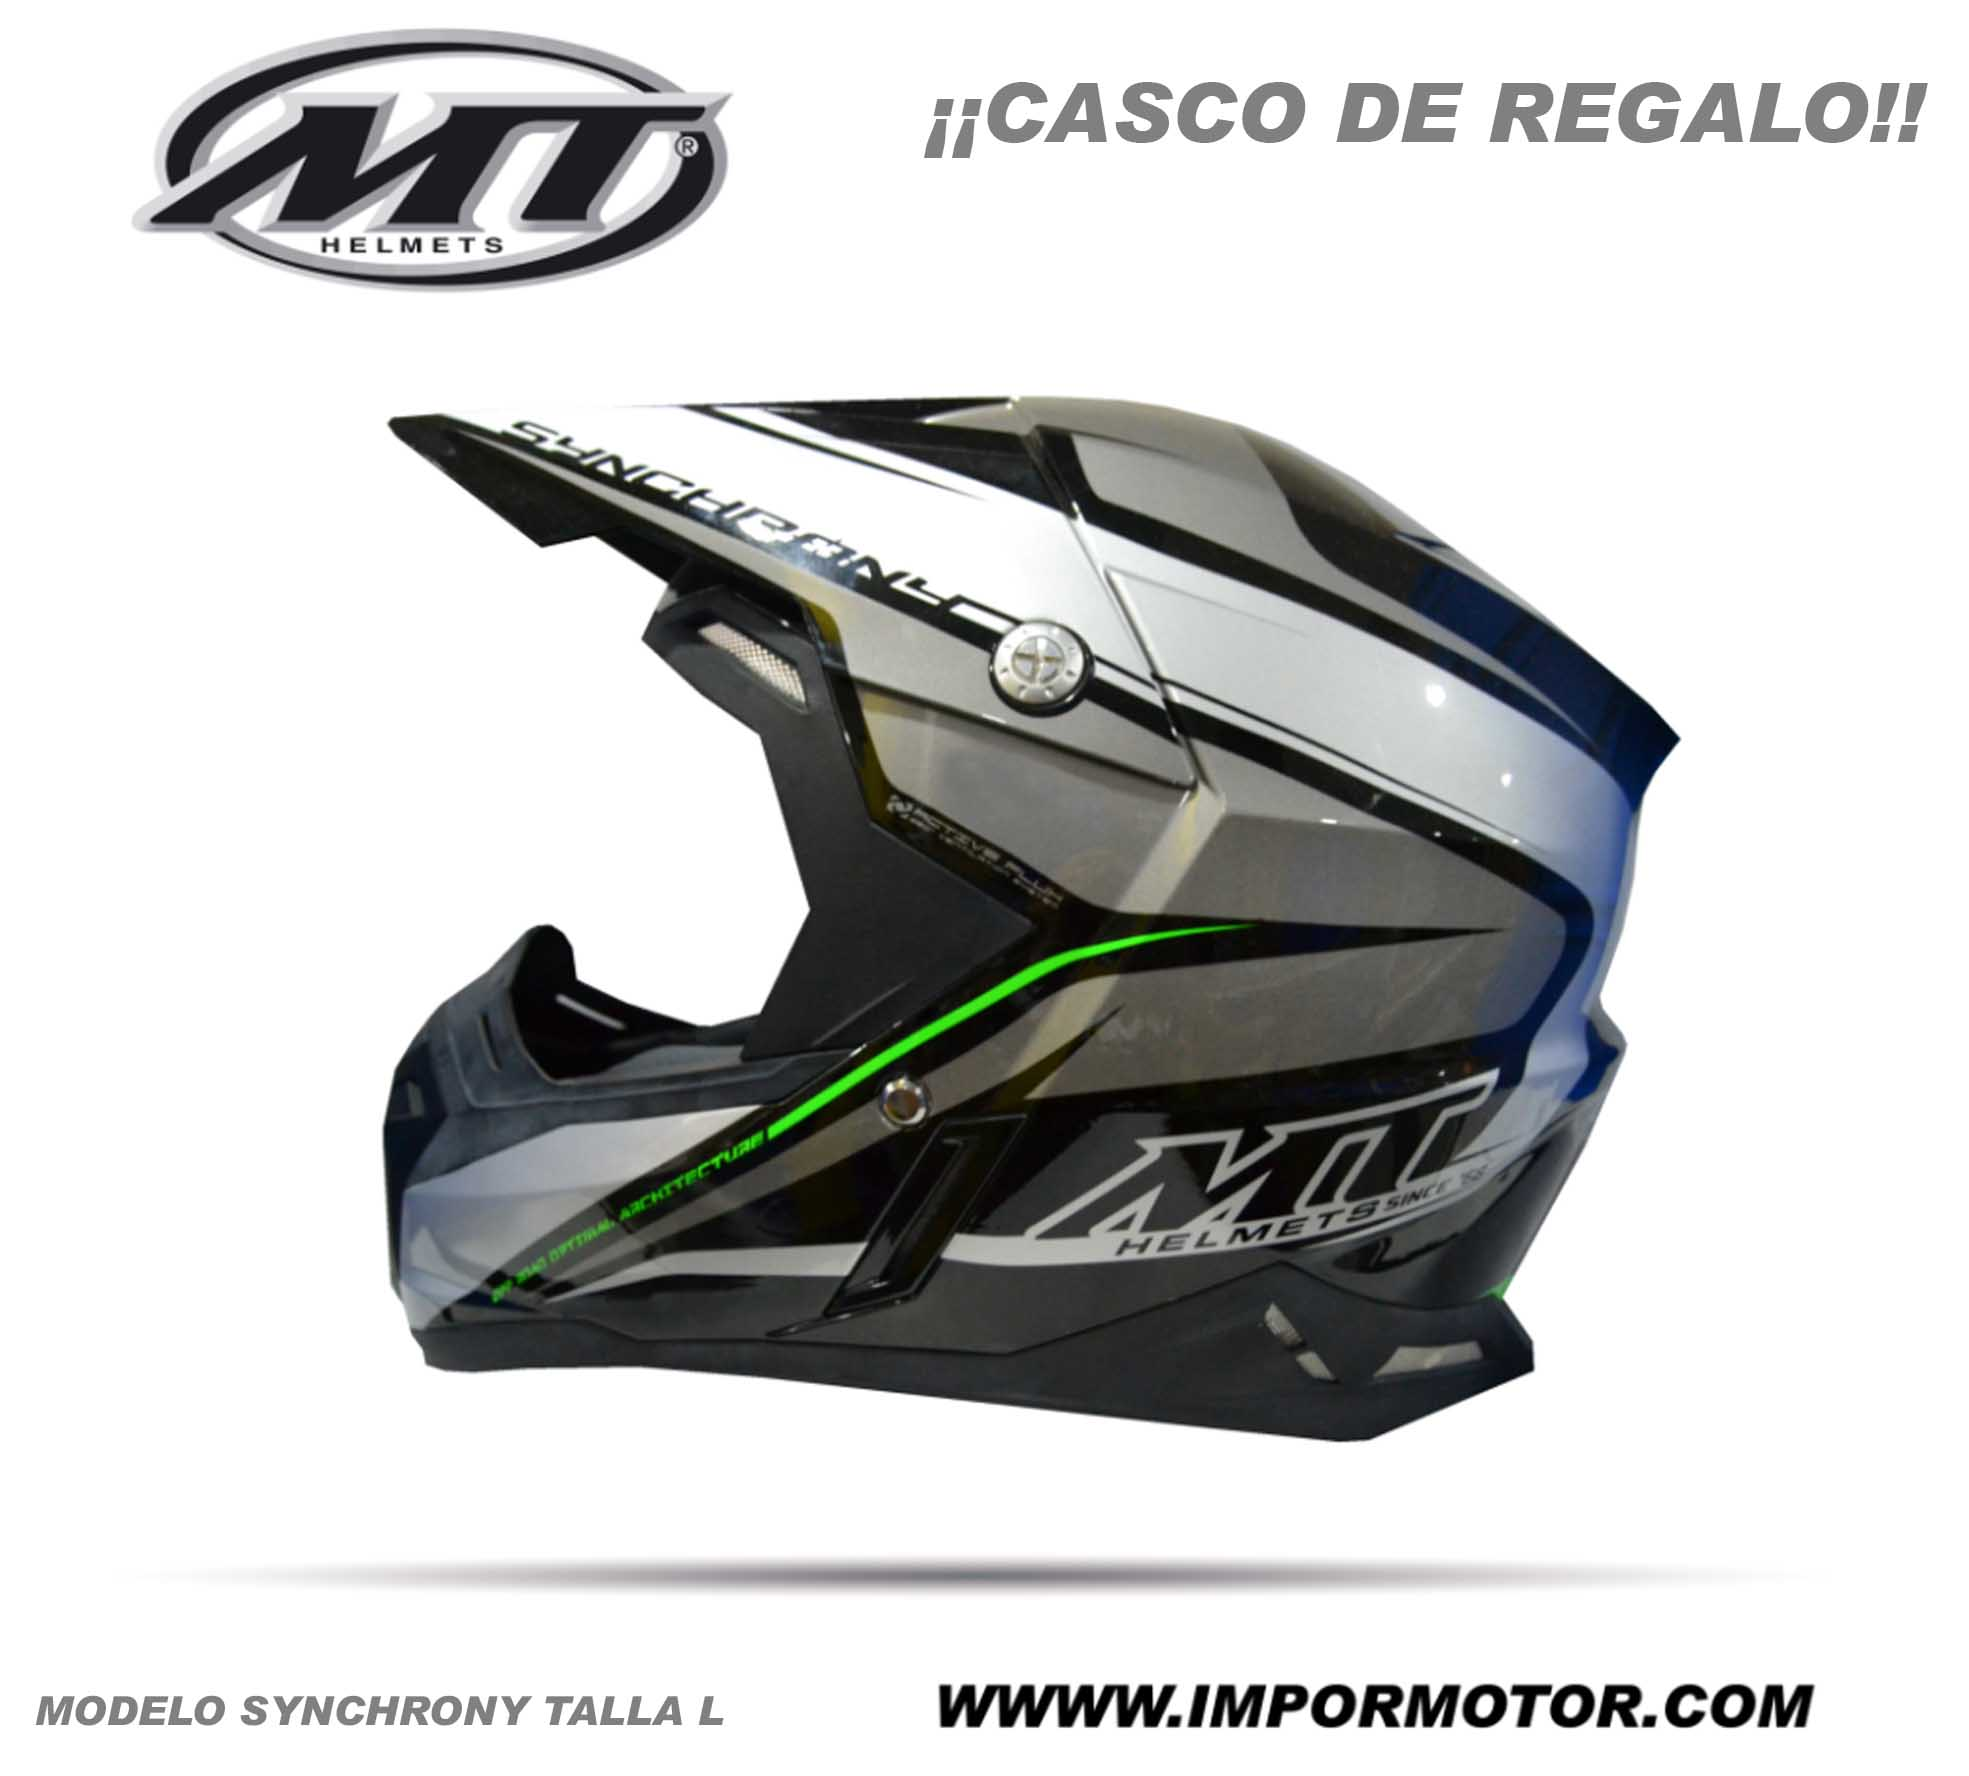 casco20regalo.jpg